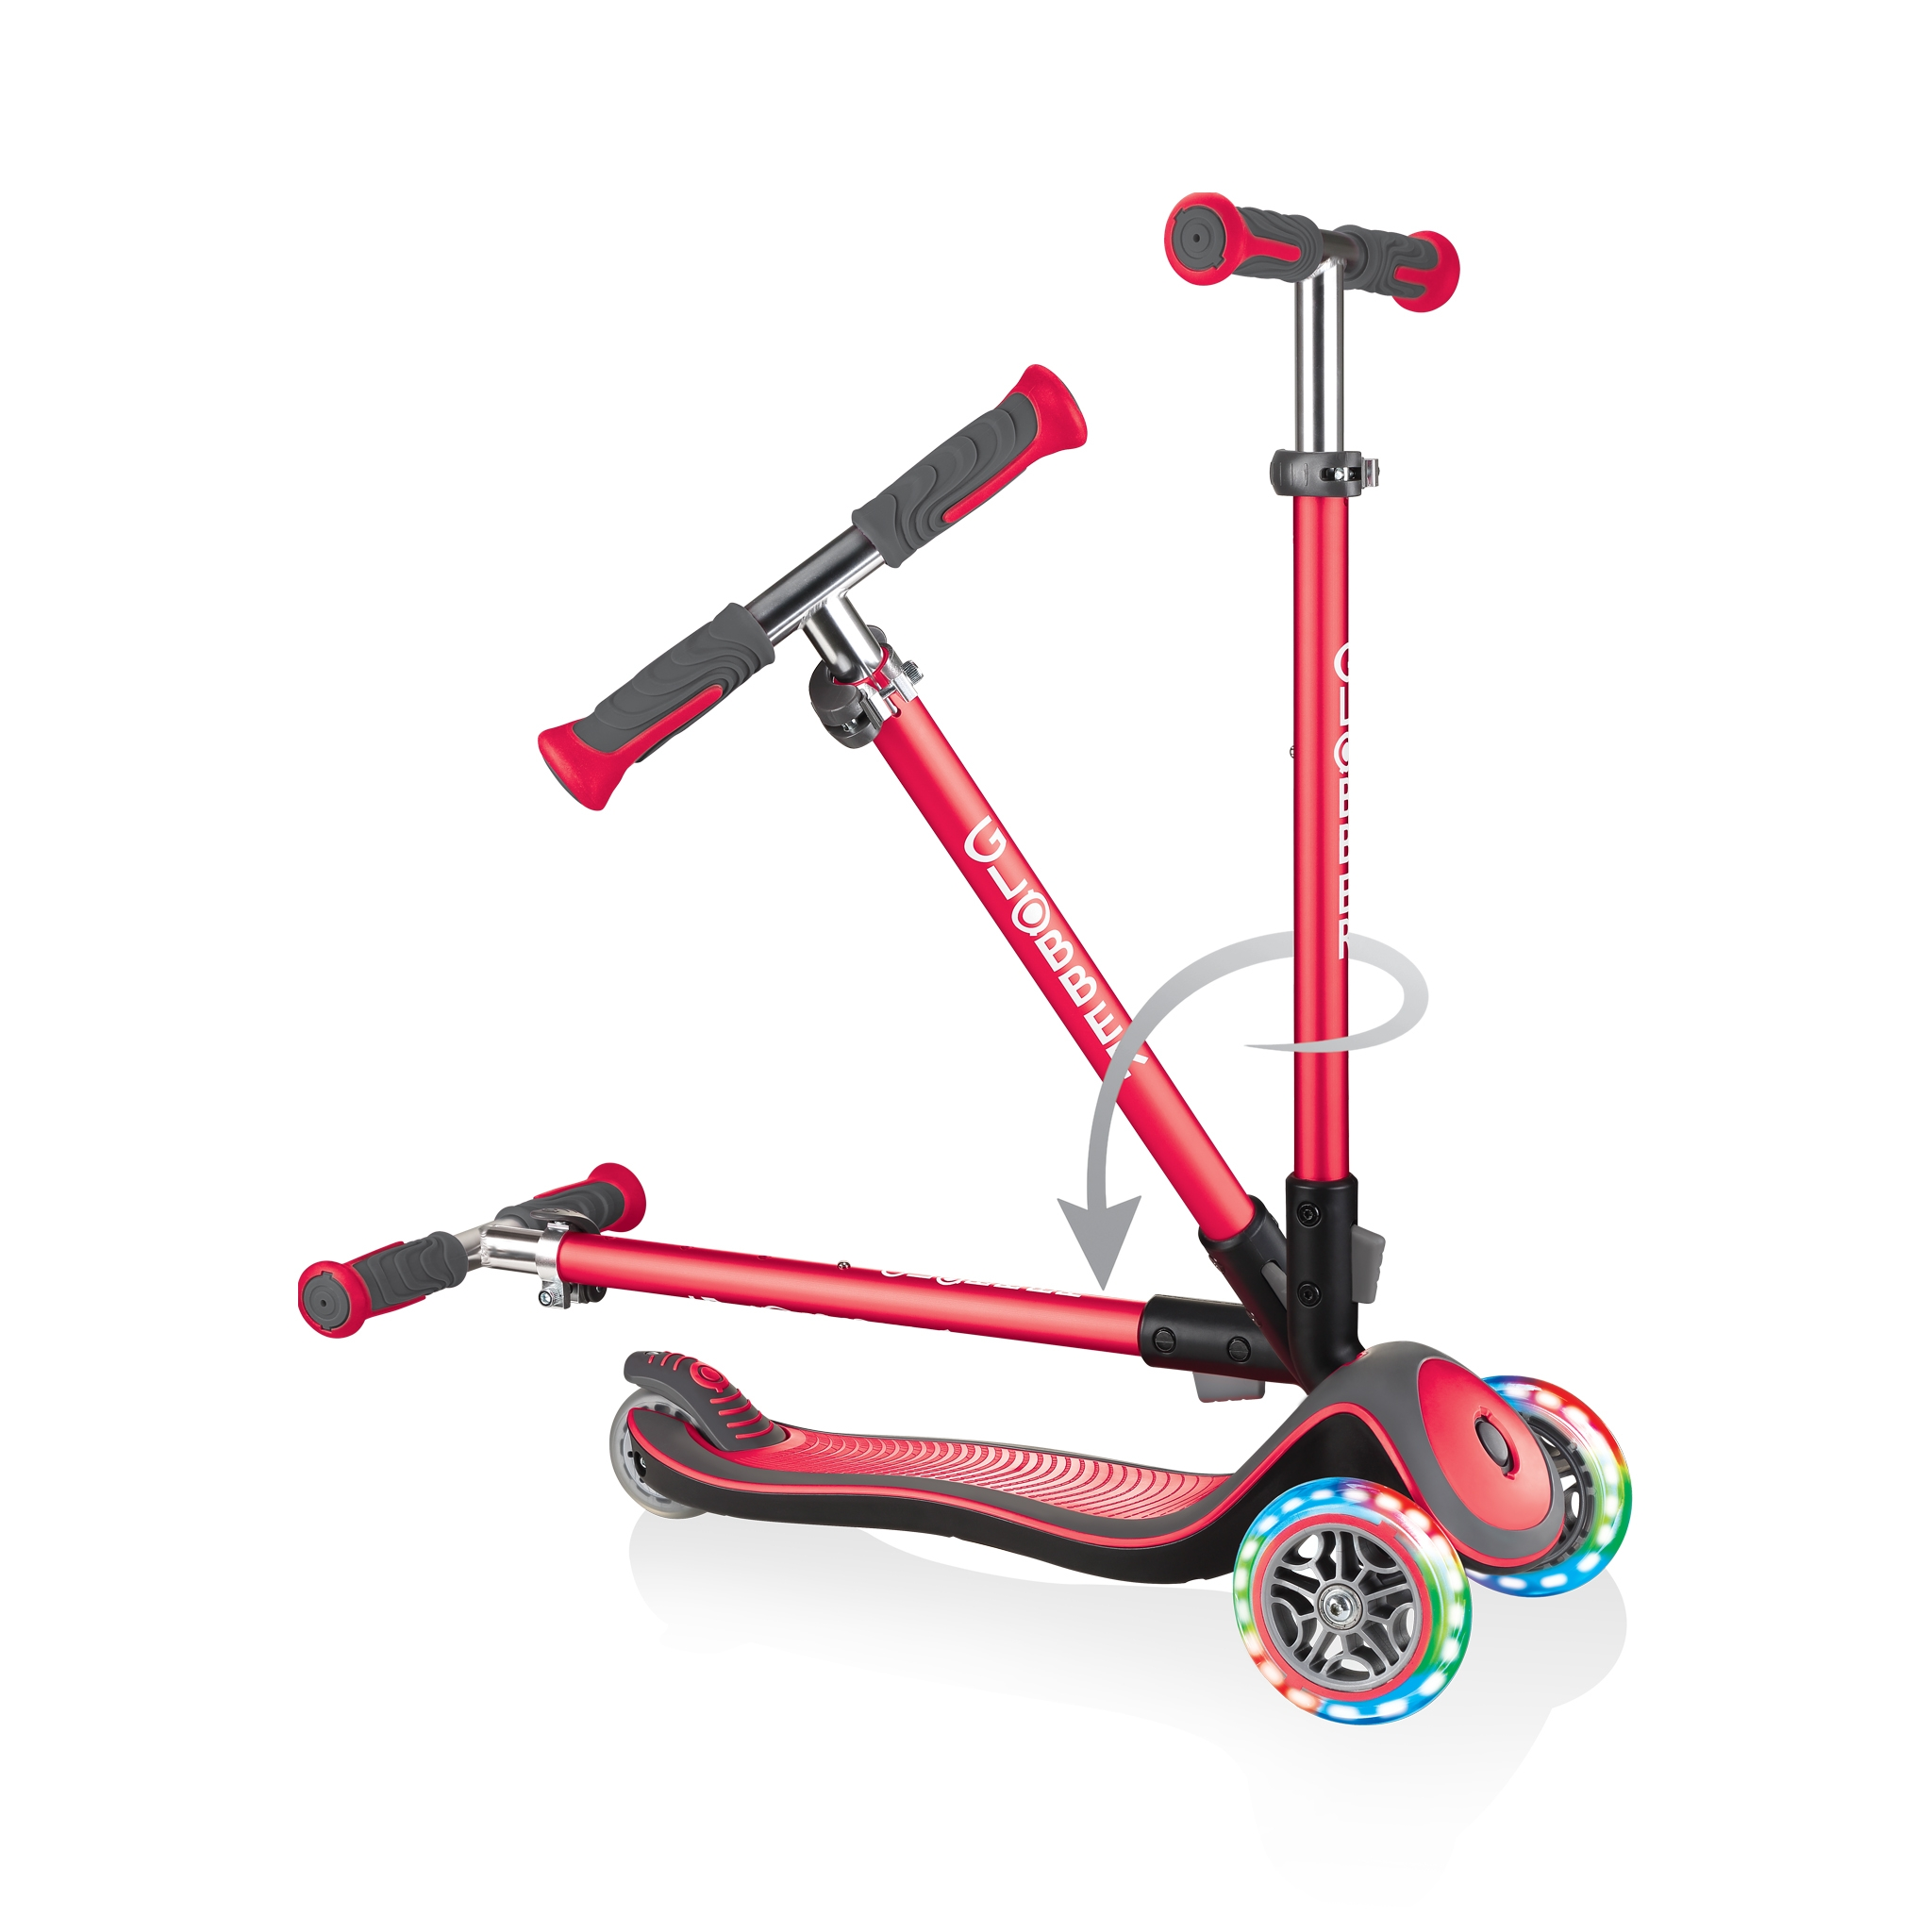 Globber-ELITE-DELUXE-LIGHTS-3-wheel-light-up-scooter-for-kids-fold-up-scooter-new-red